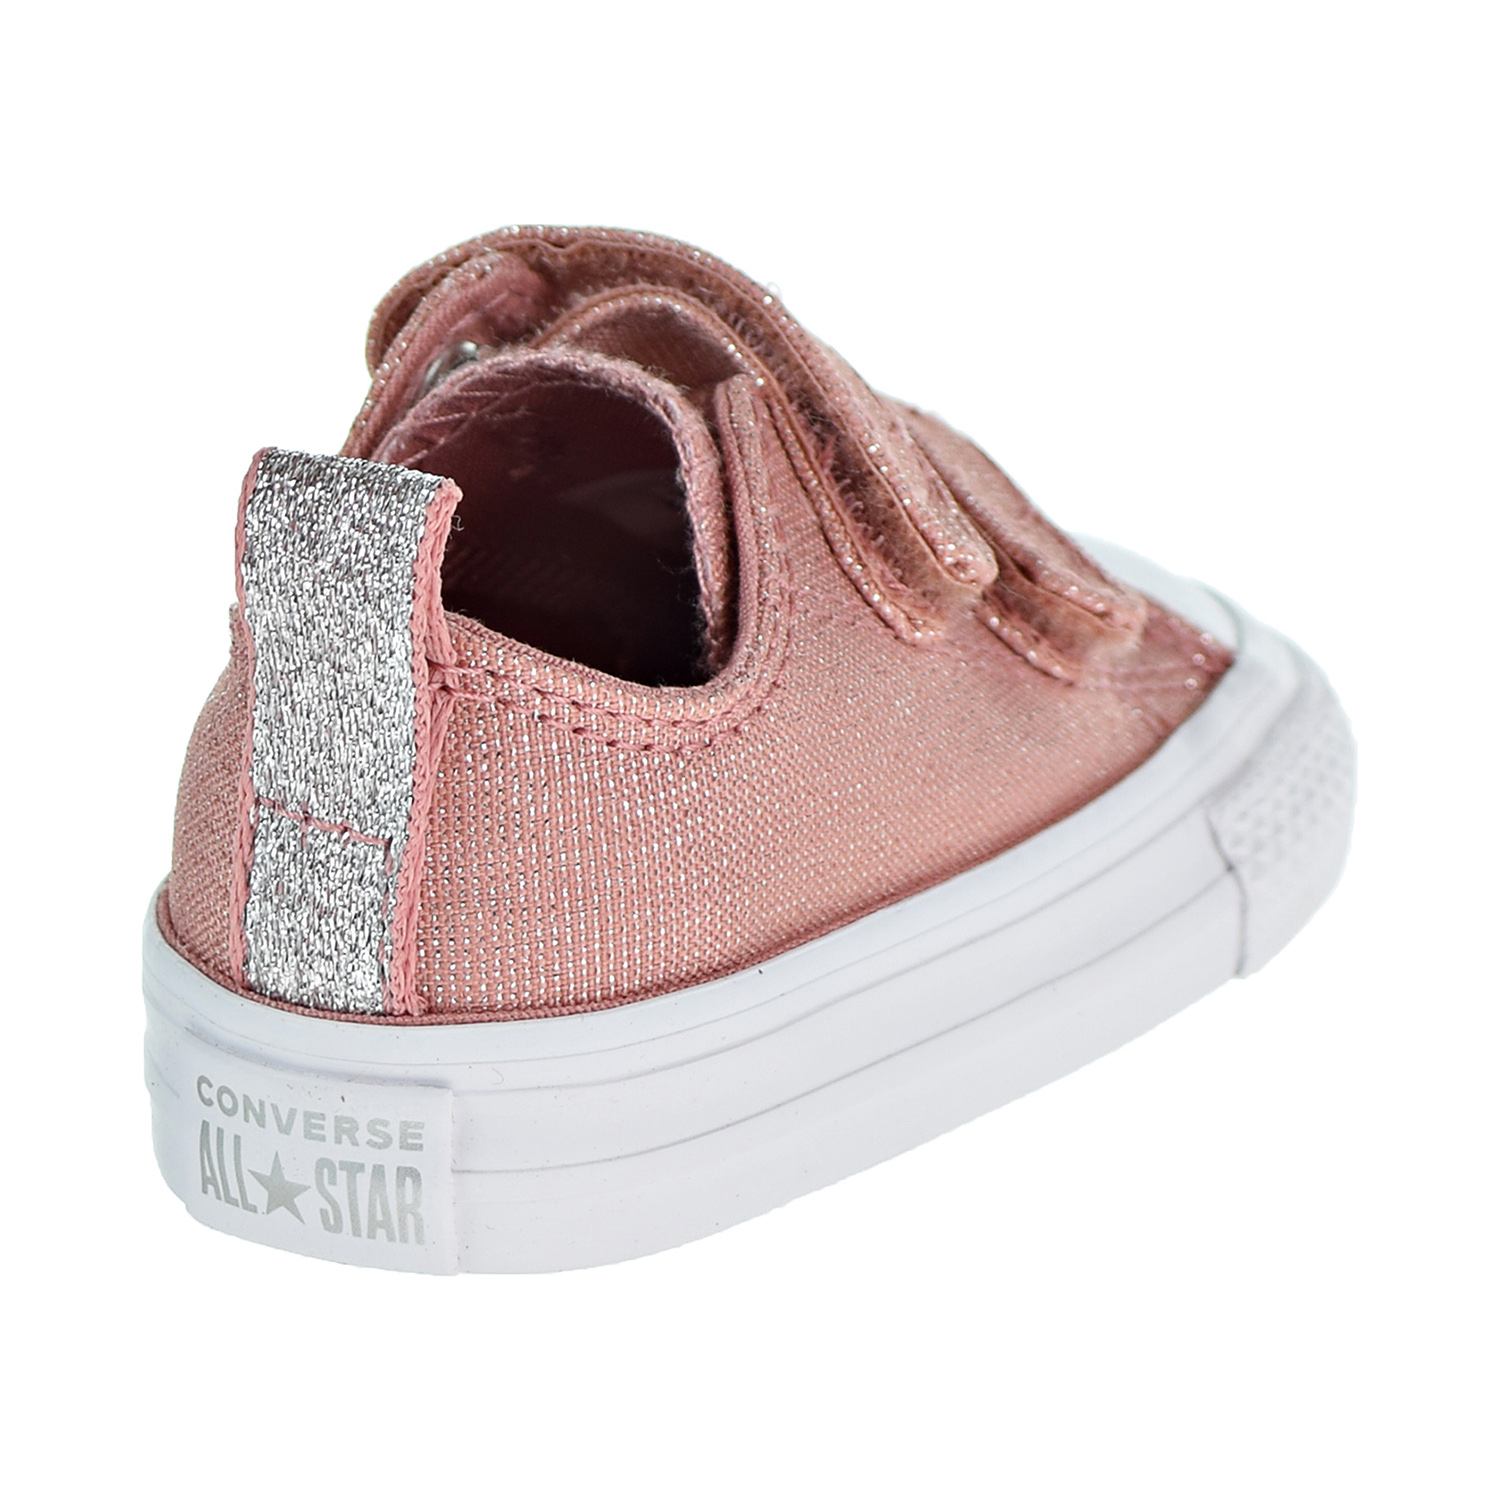 966b730b433 Converse Chuck Taylor All Star 2V OX Toddlers Shoes Rust Pink White 761967f